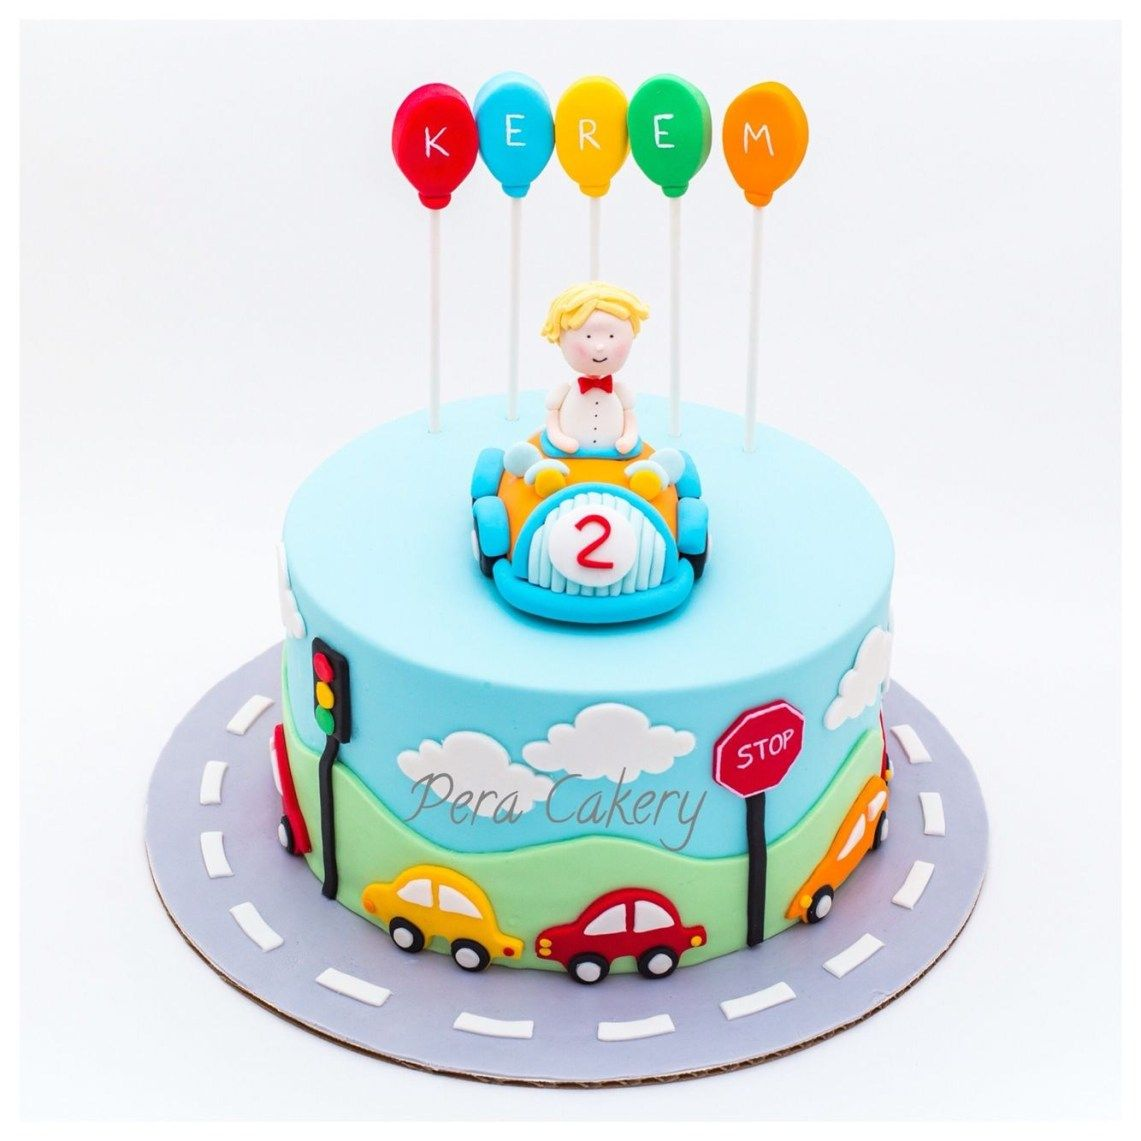 Terrific 25 Elegant Picture Of 2 Year Old Birthday Cake With Images Funny Birthday Cards Online Elaedamsfinfo